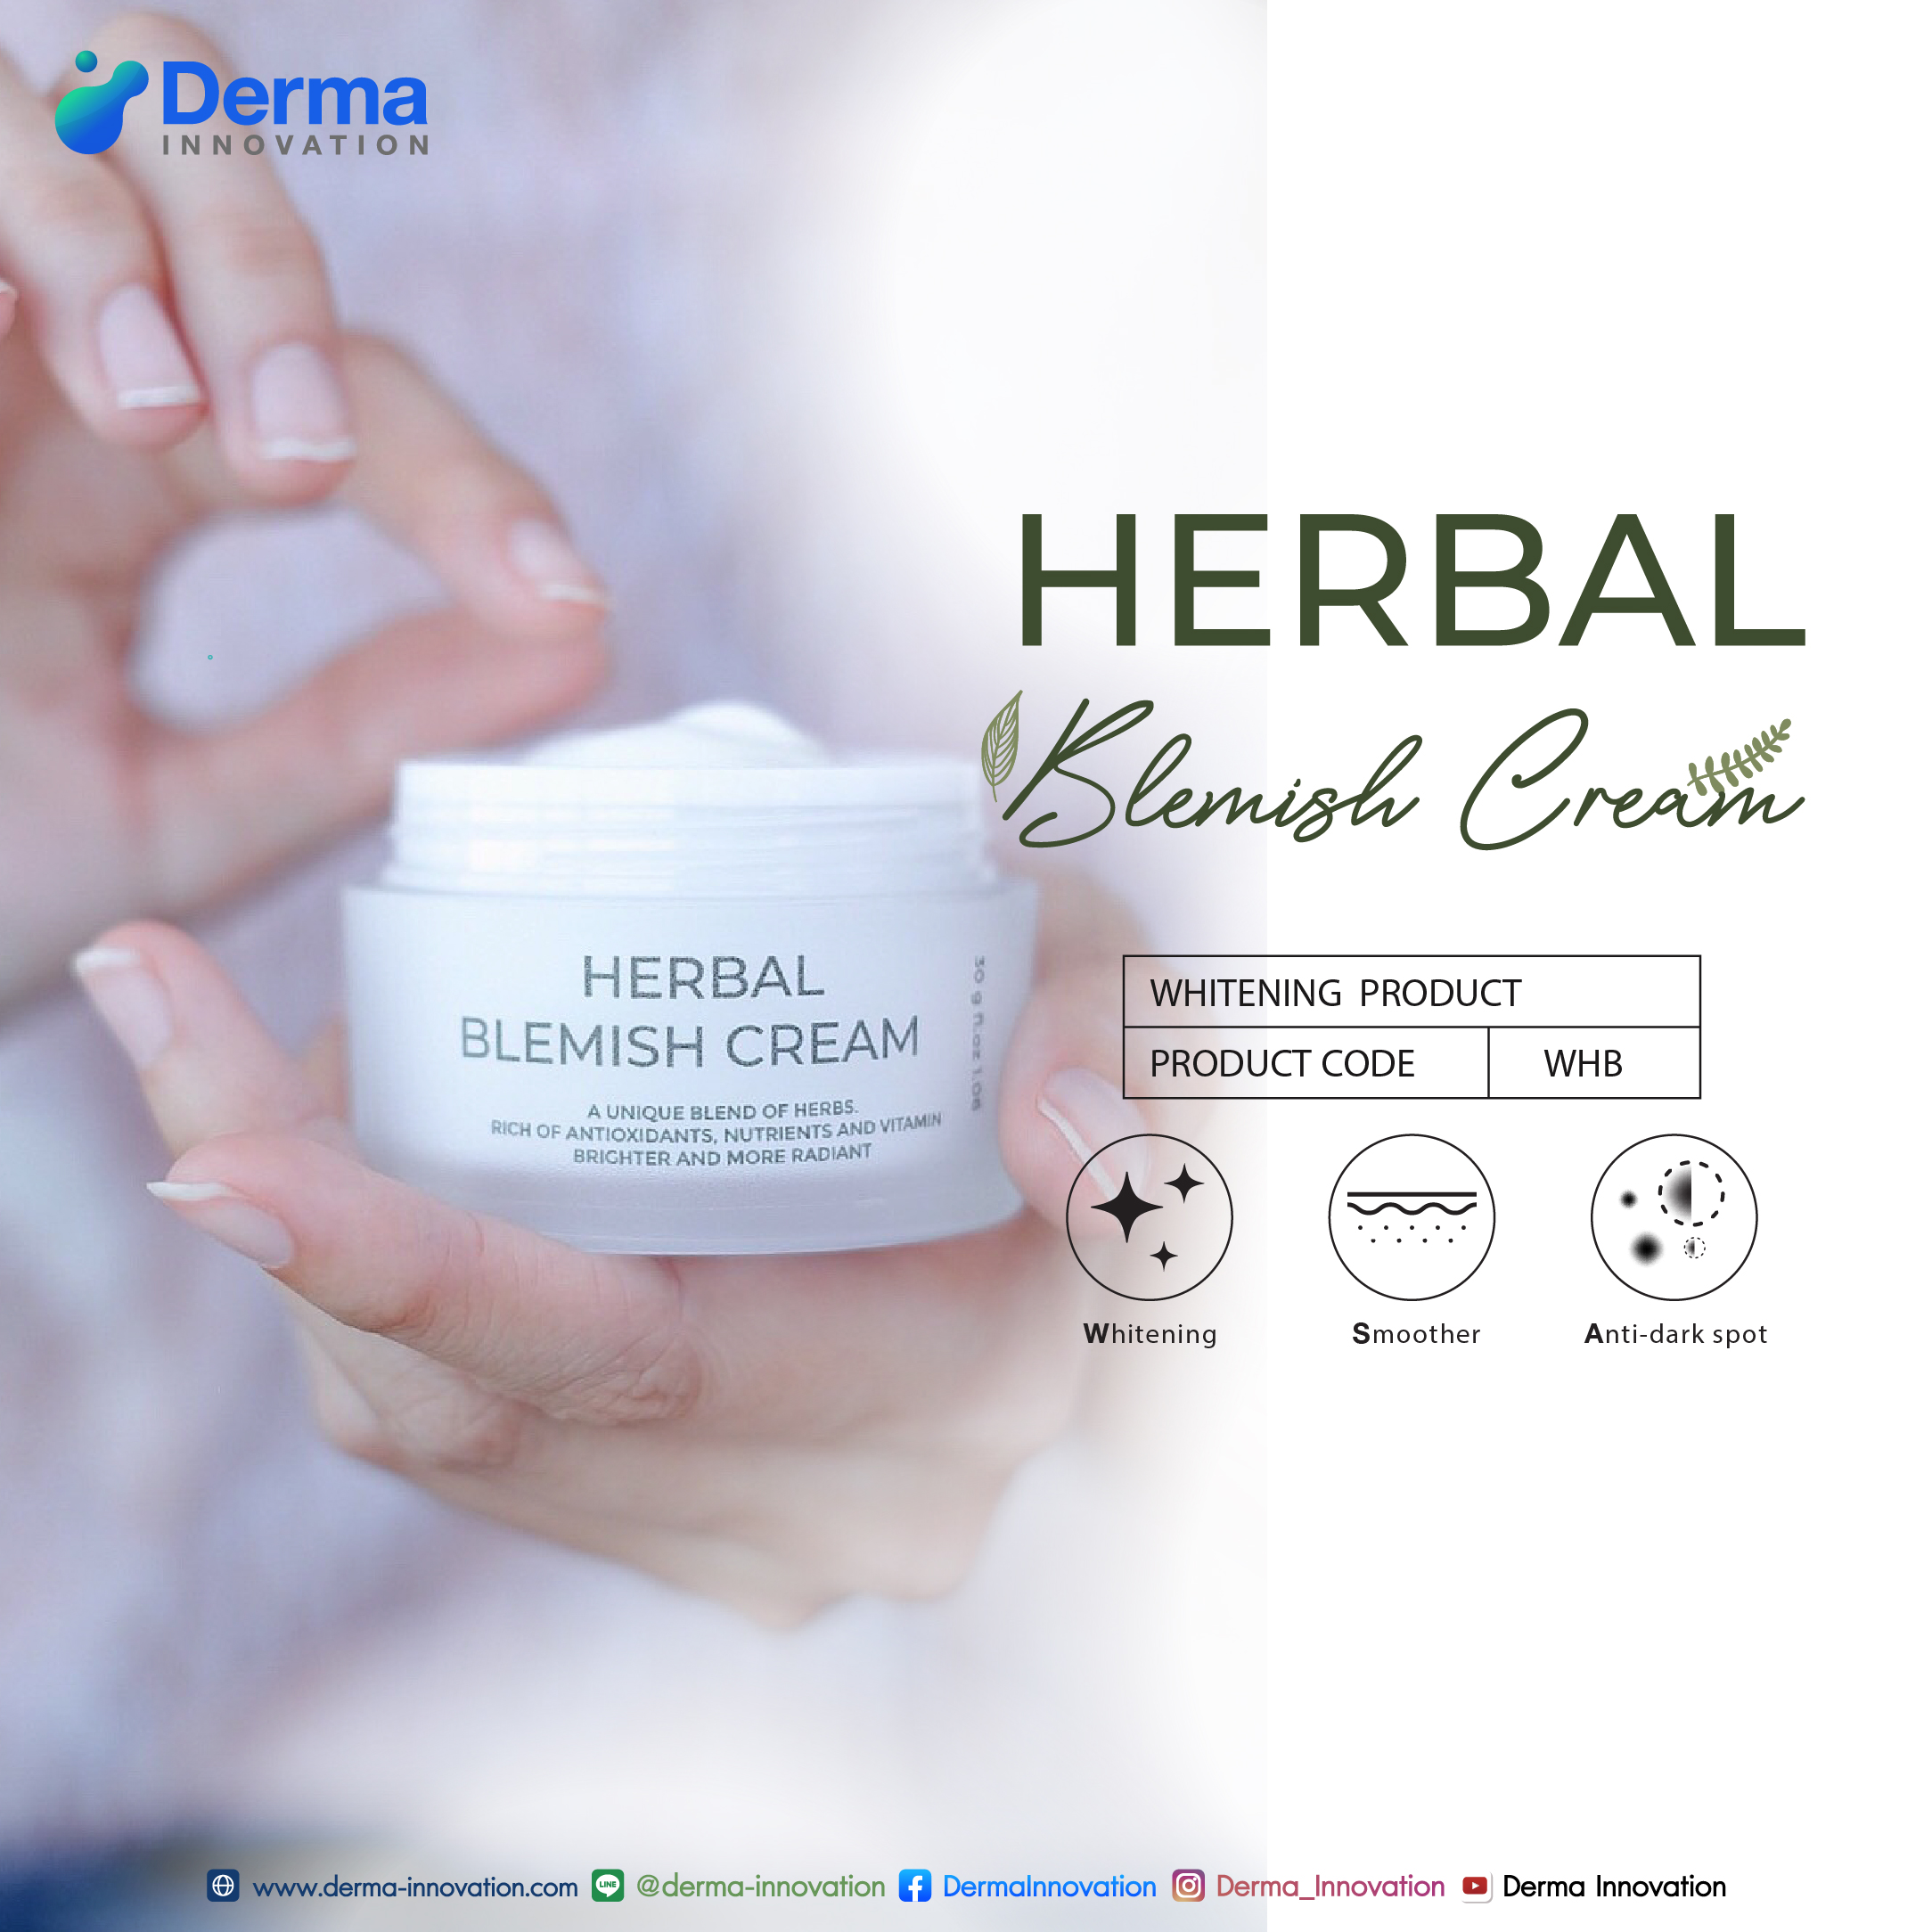 WHB Herbal Blemish Cream